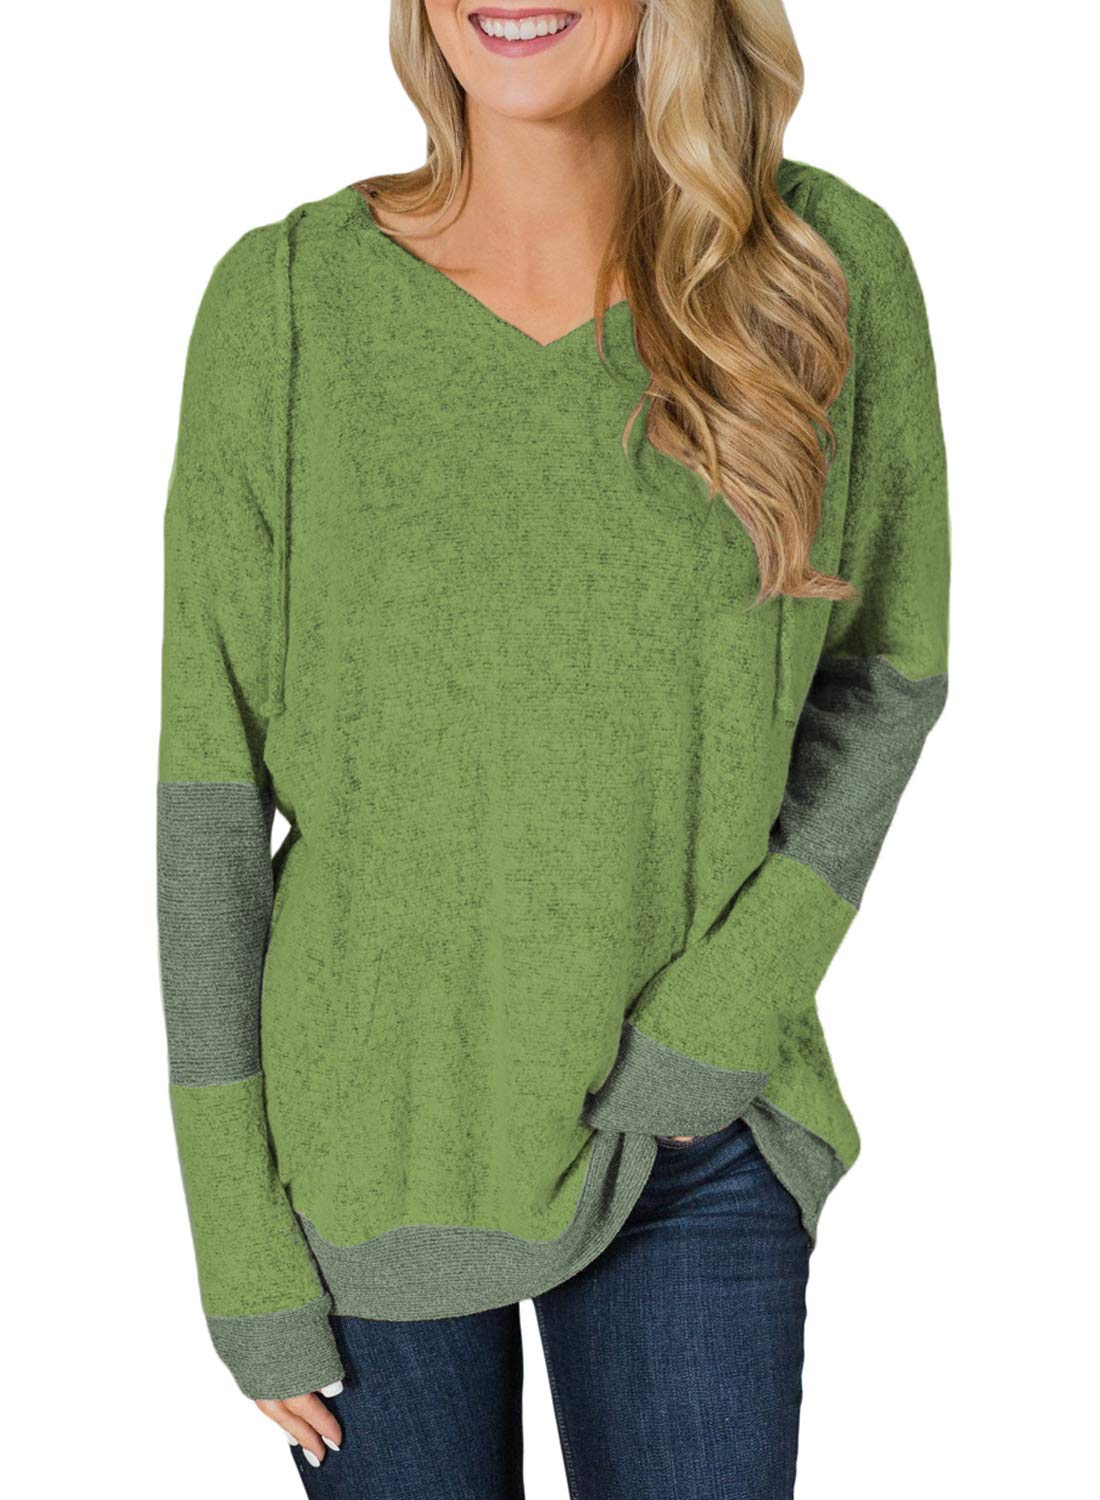 f5d1211a8bf08 HOTAPEI Women s Fashion Cozy Pullover Hoodie Sweatshirt Oversized Baggy  Loose V-Neck Long Sleeve Tunic Shirt Knit Sweater Tops Blouses Army Green  X-Large